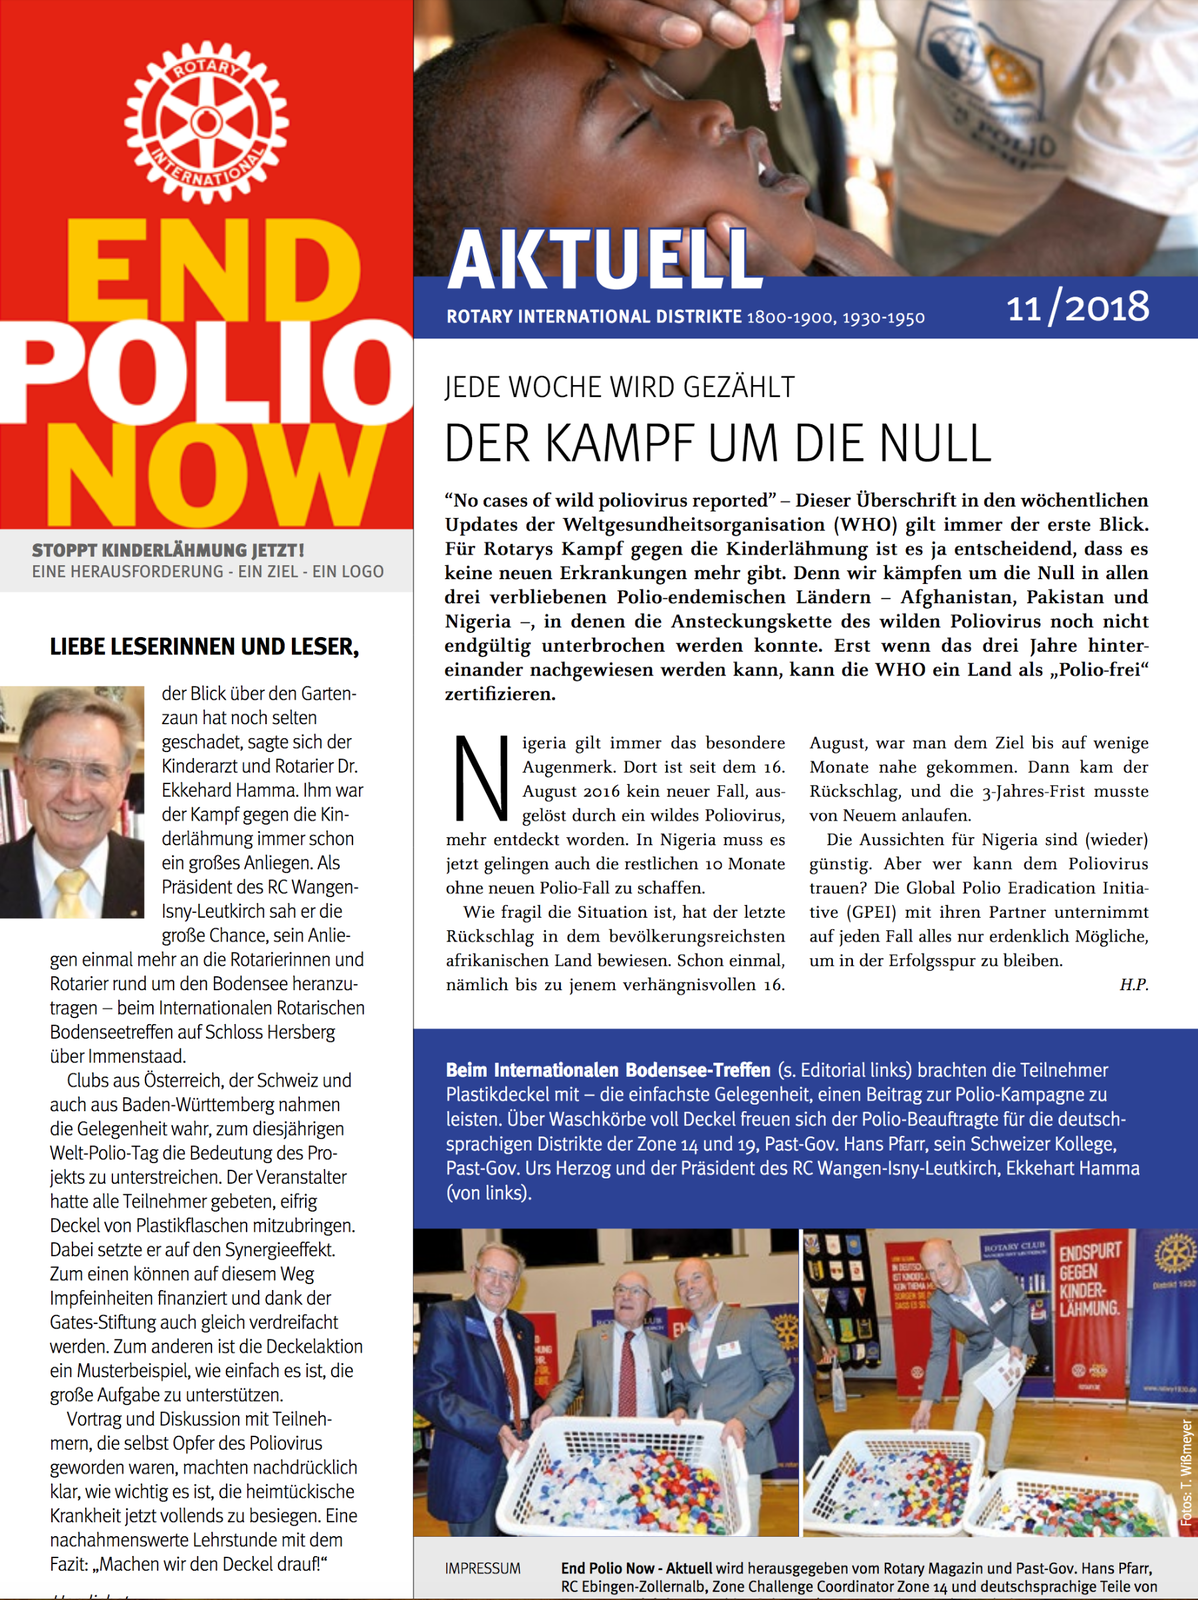 EPN, EndPolioNow, End Polio Now, Polio, Kinderlähmung, Krankheit, Gesundheit, Newsletter, November 2018